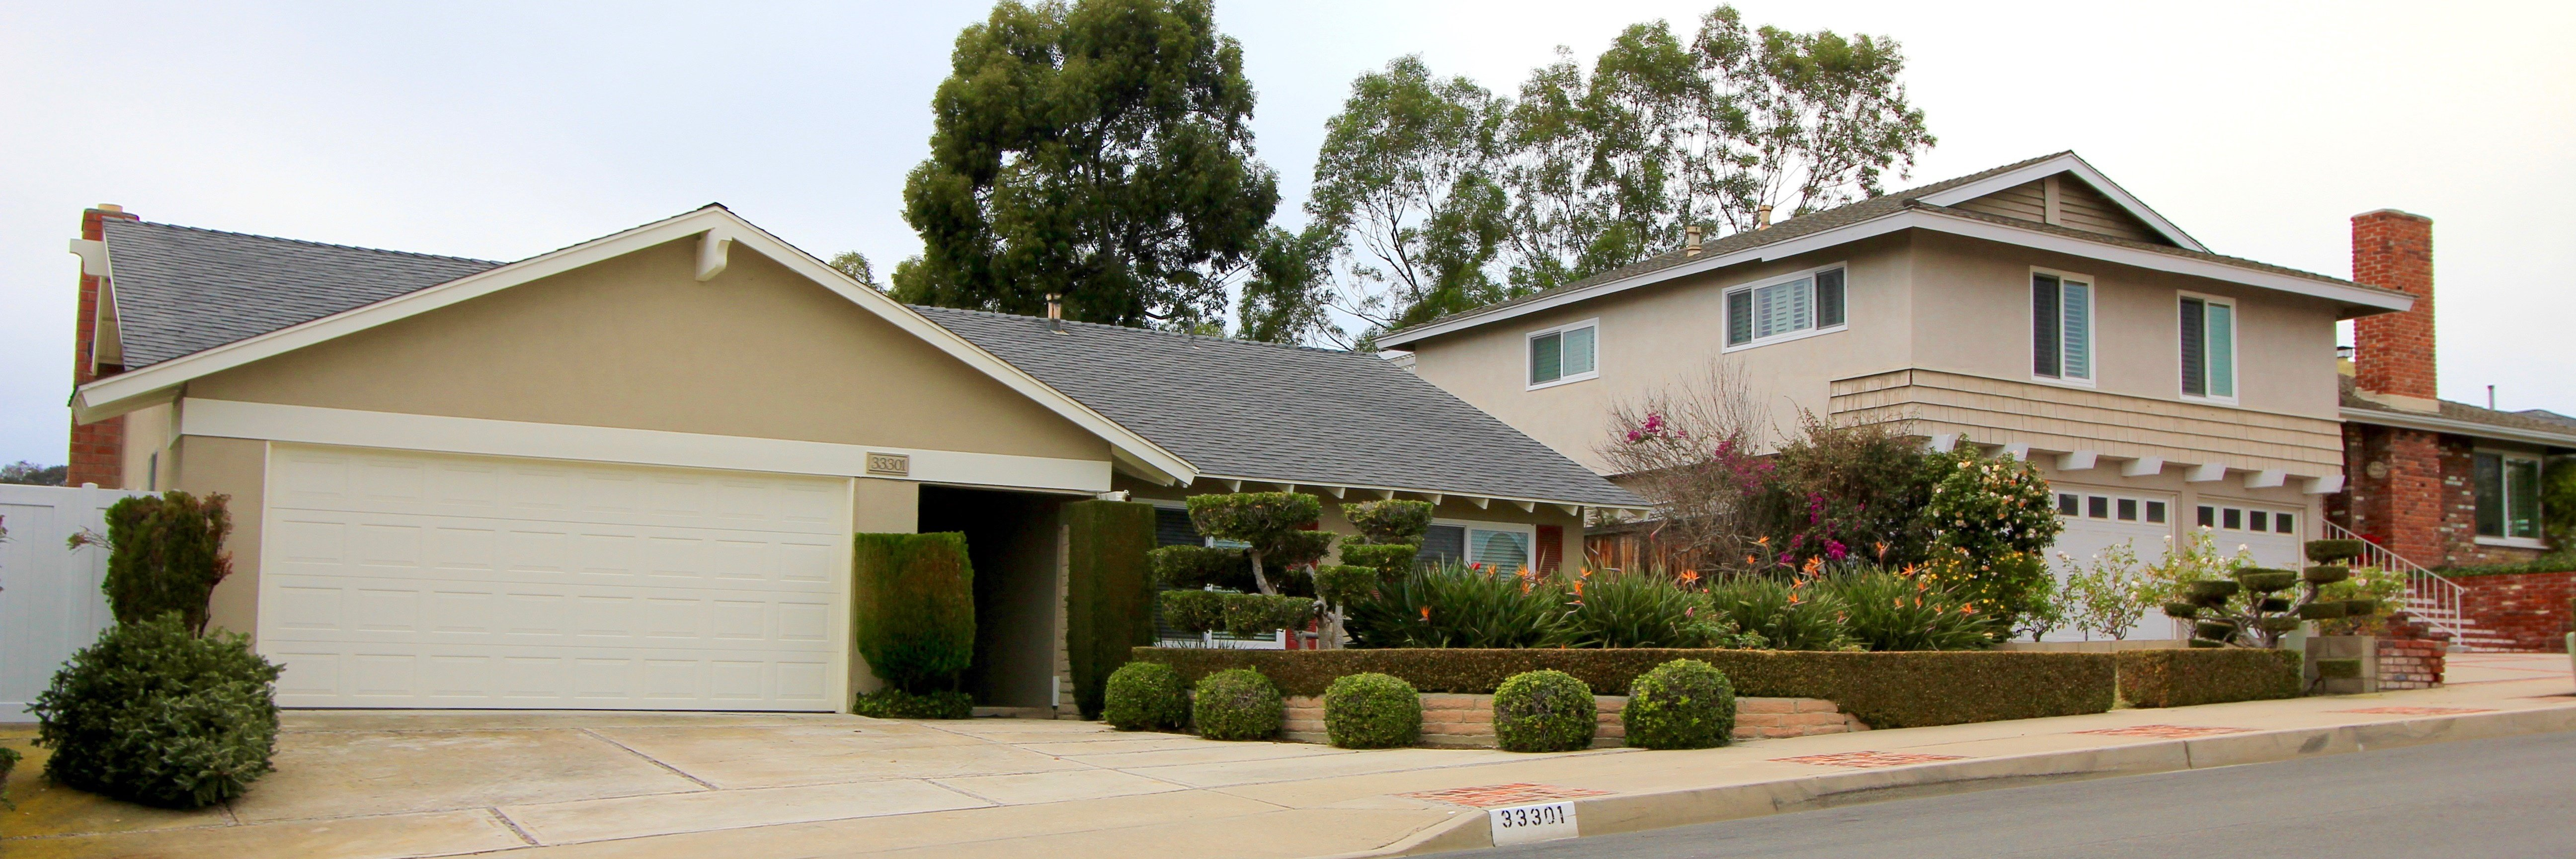 The community of Dana Knolls is located in Dana Point California